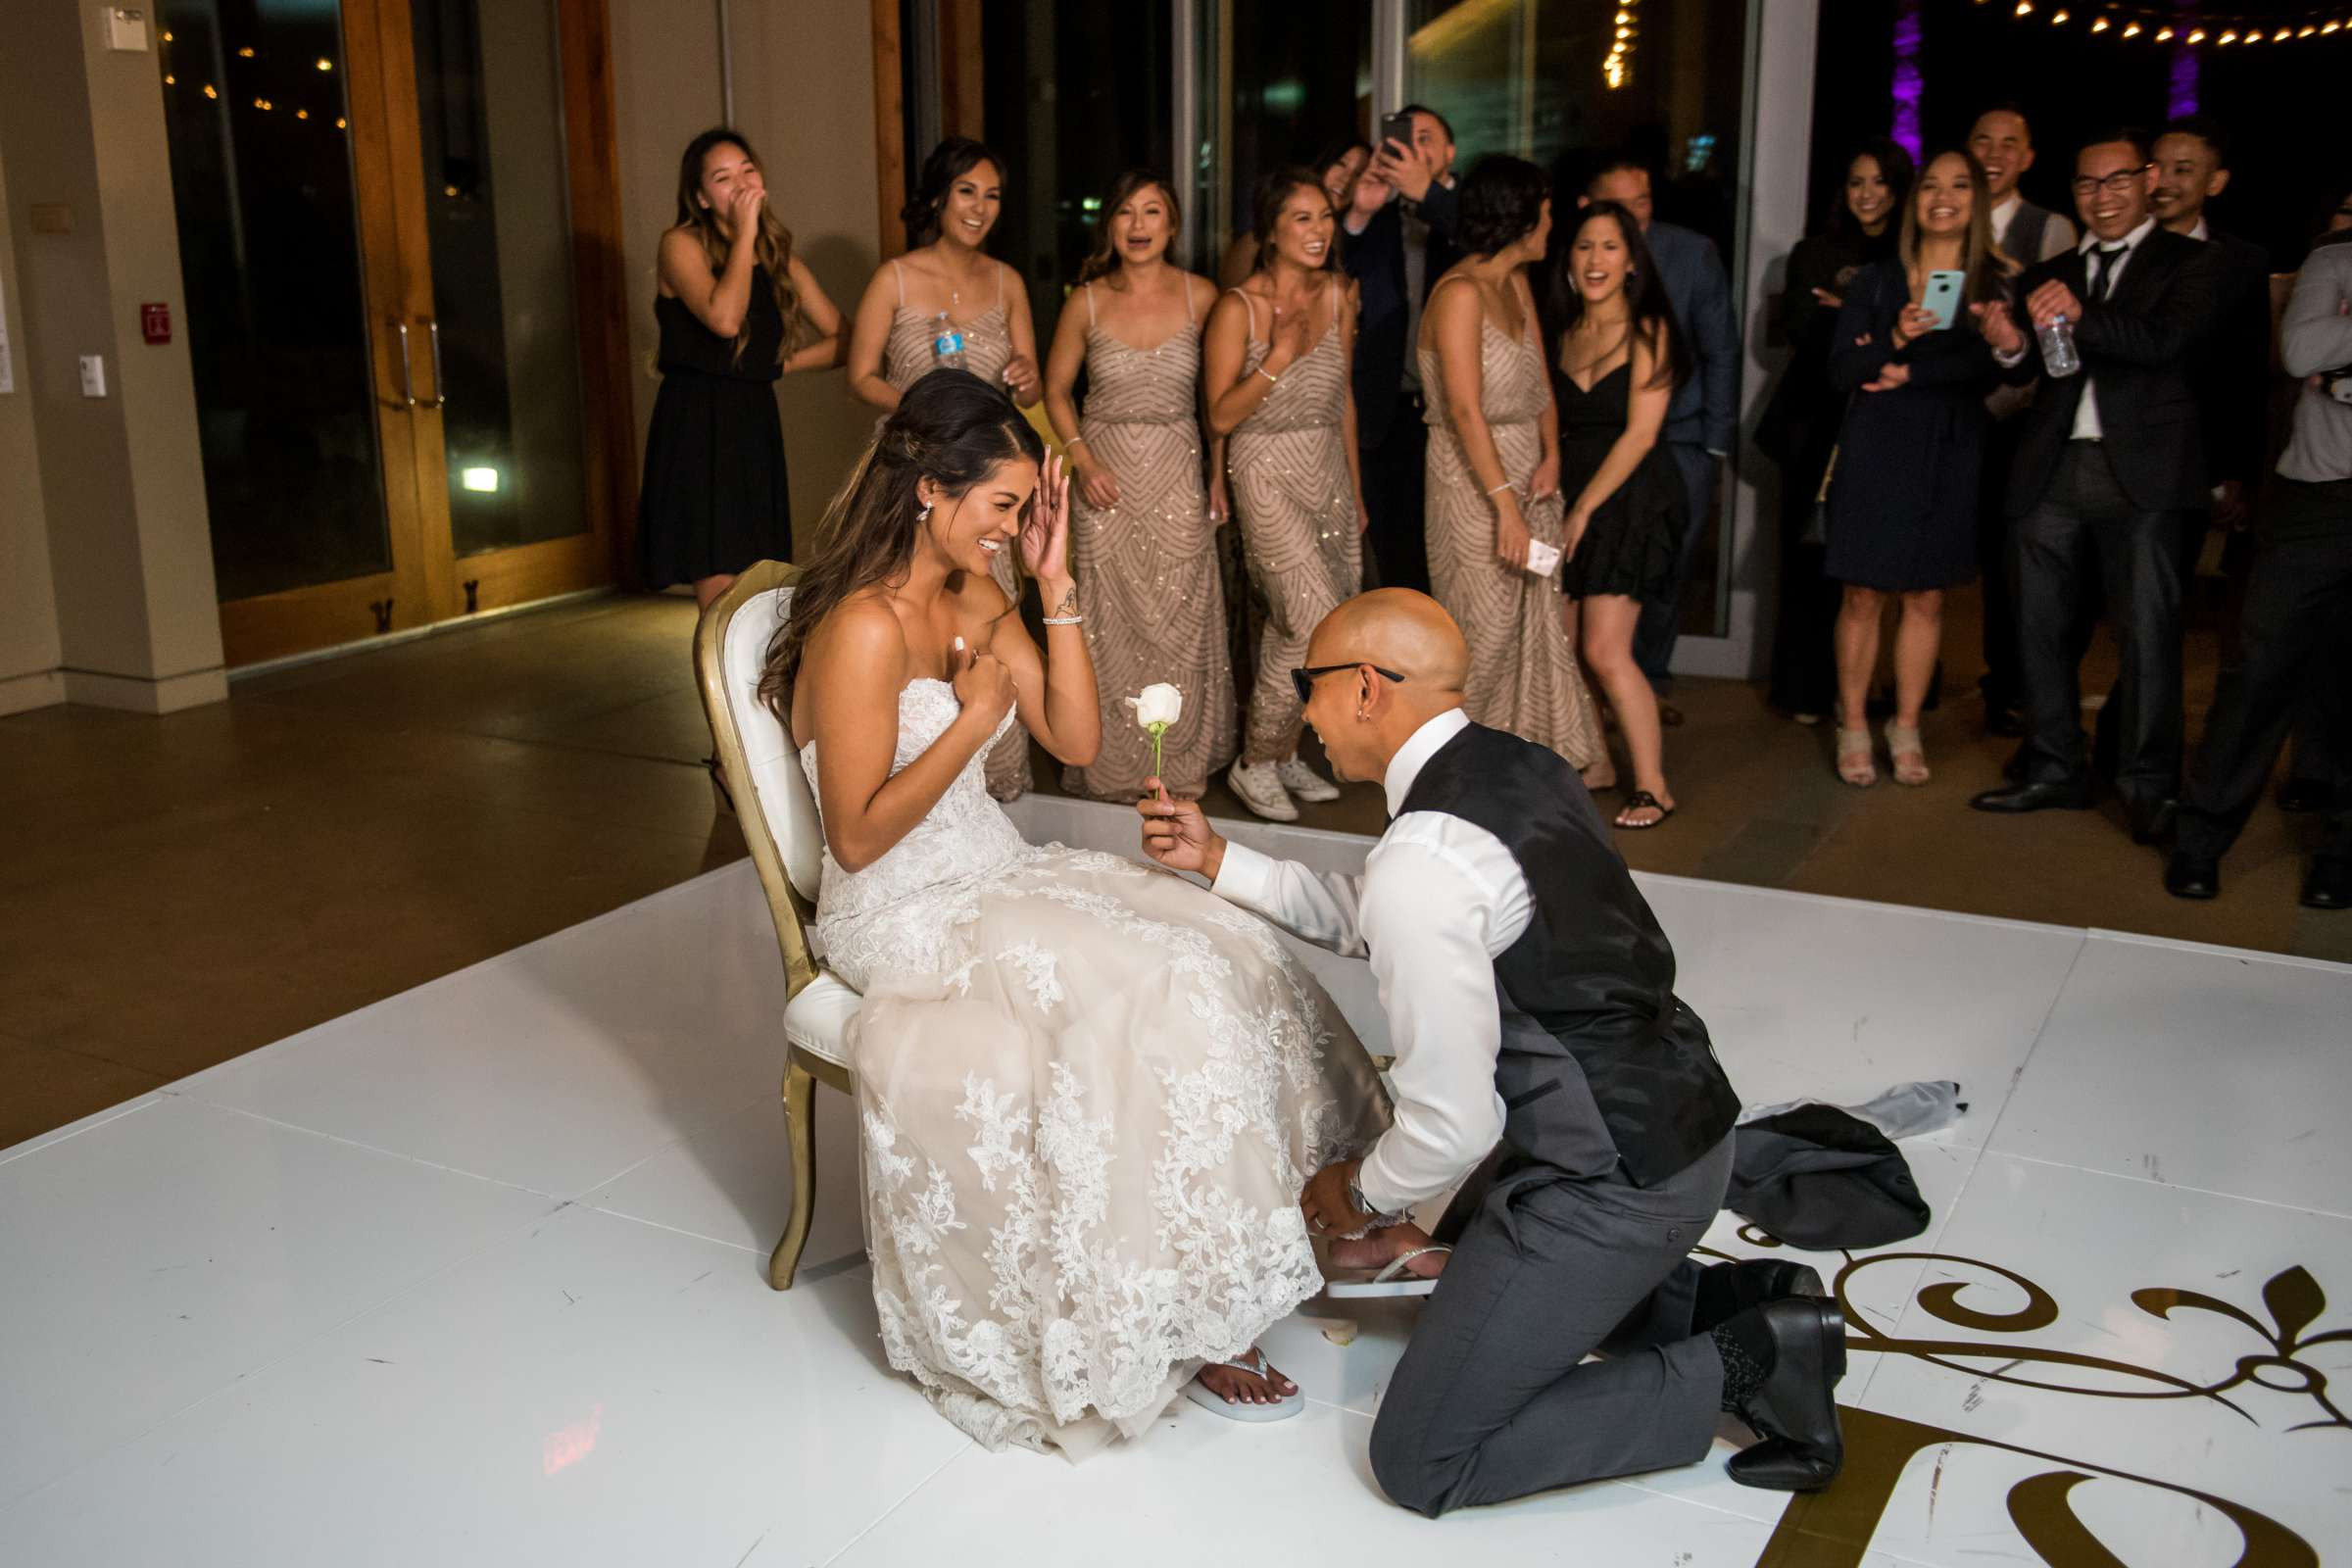 Scripps Seaside Forum Wedding coordinated by Lavish Weddings, Cindy and Justin Wedding Photo #381890 by True Photography